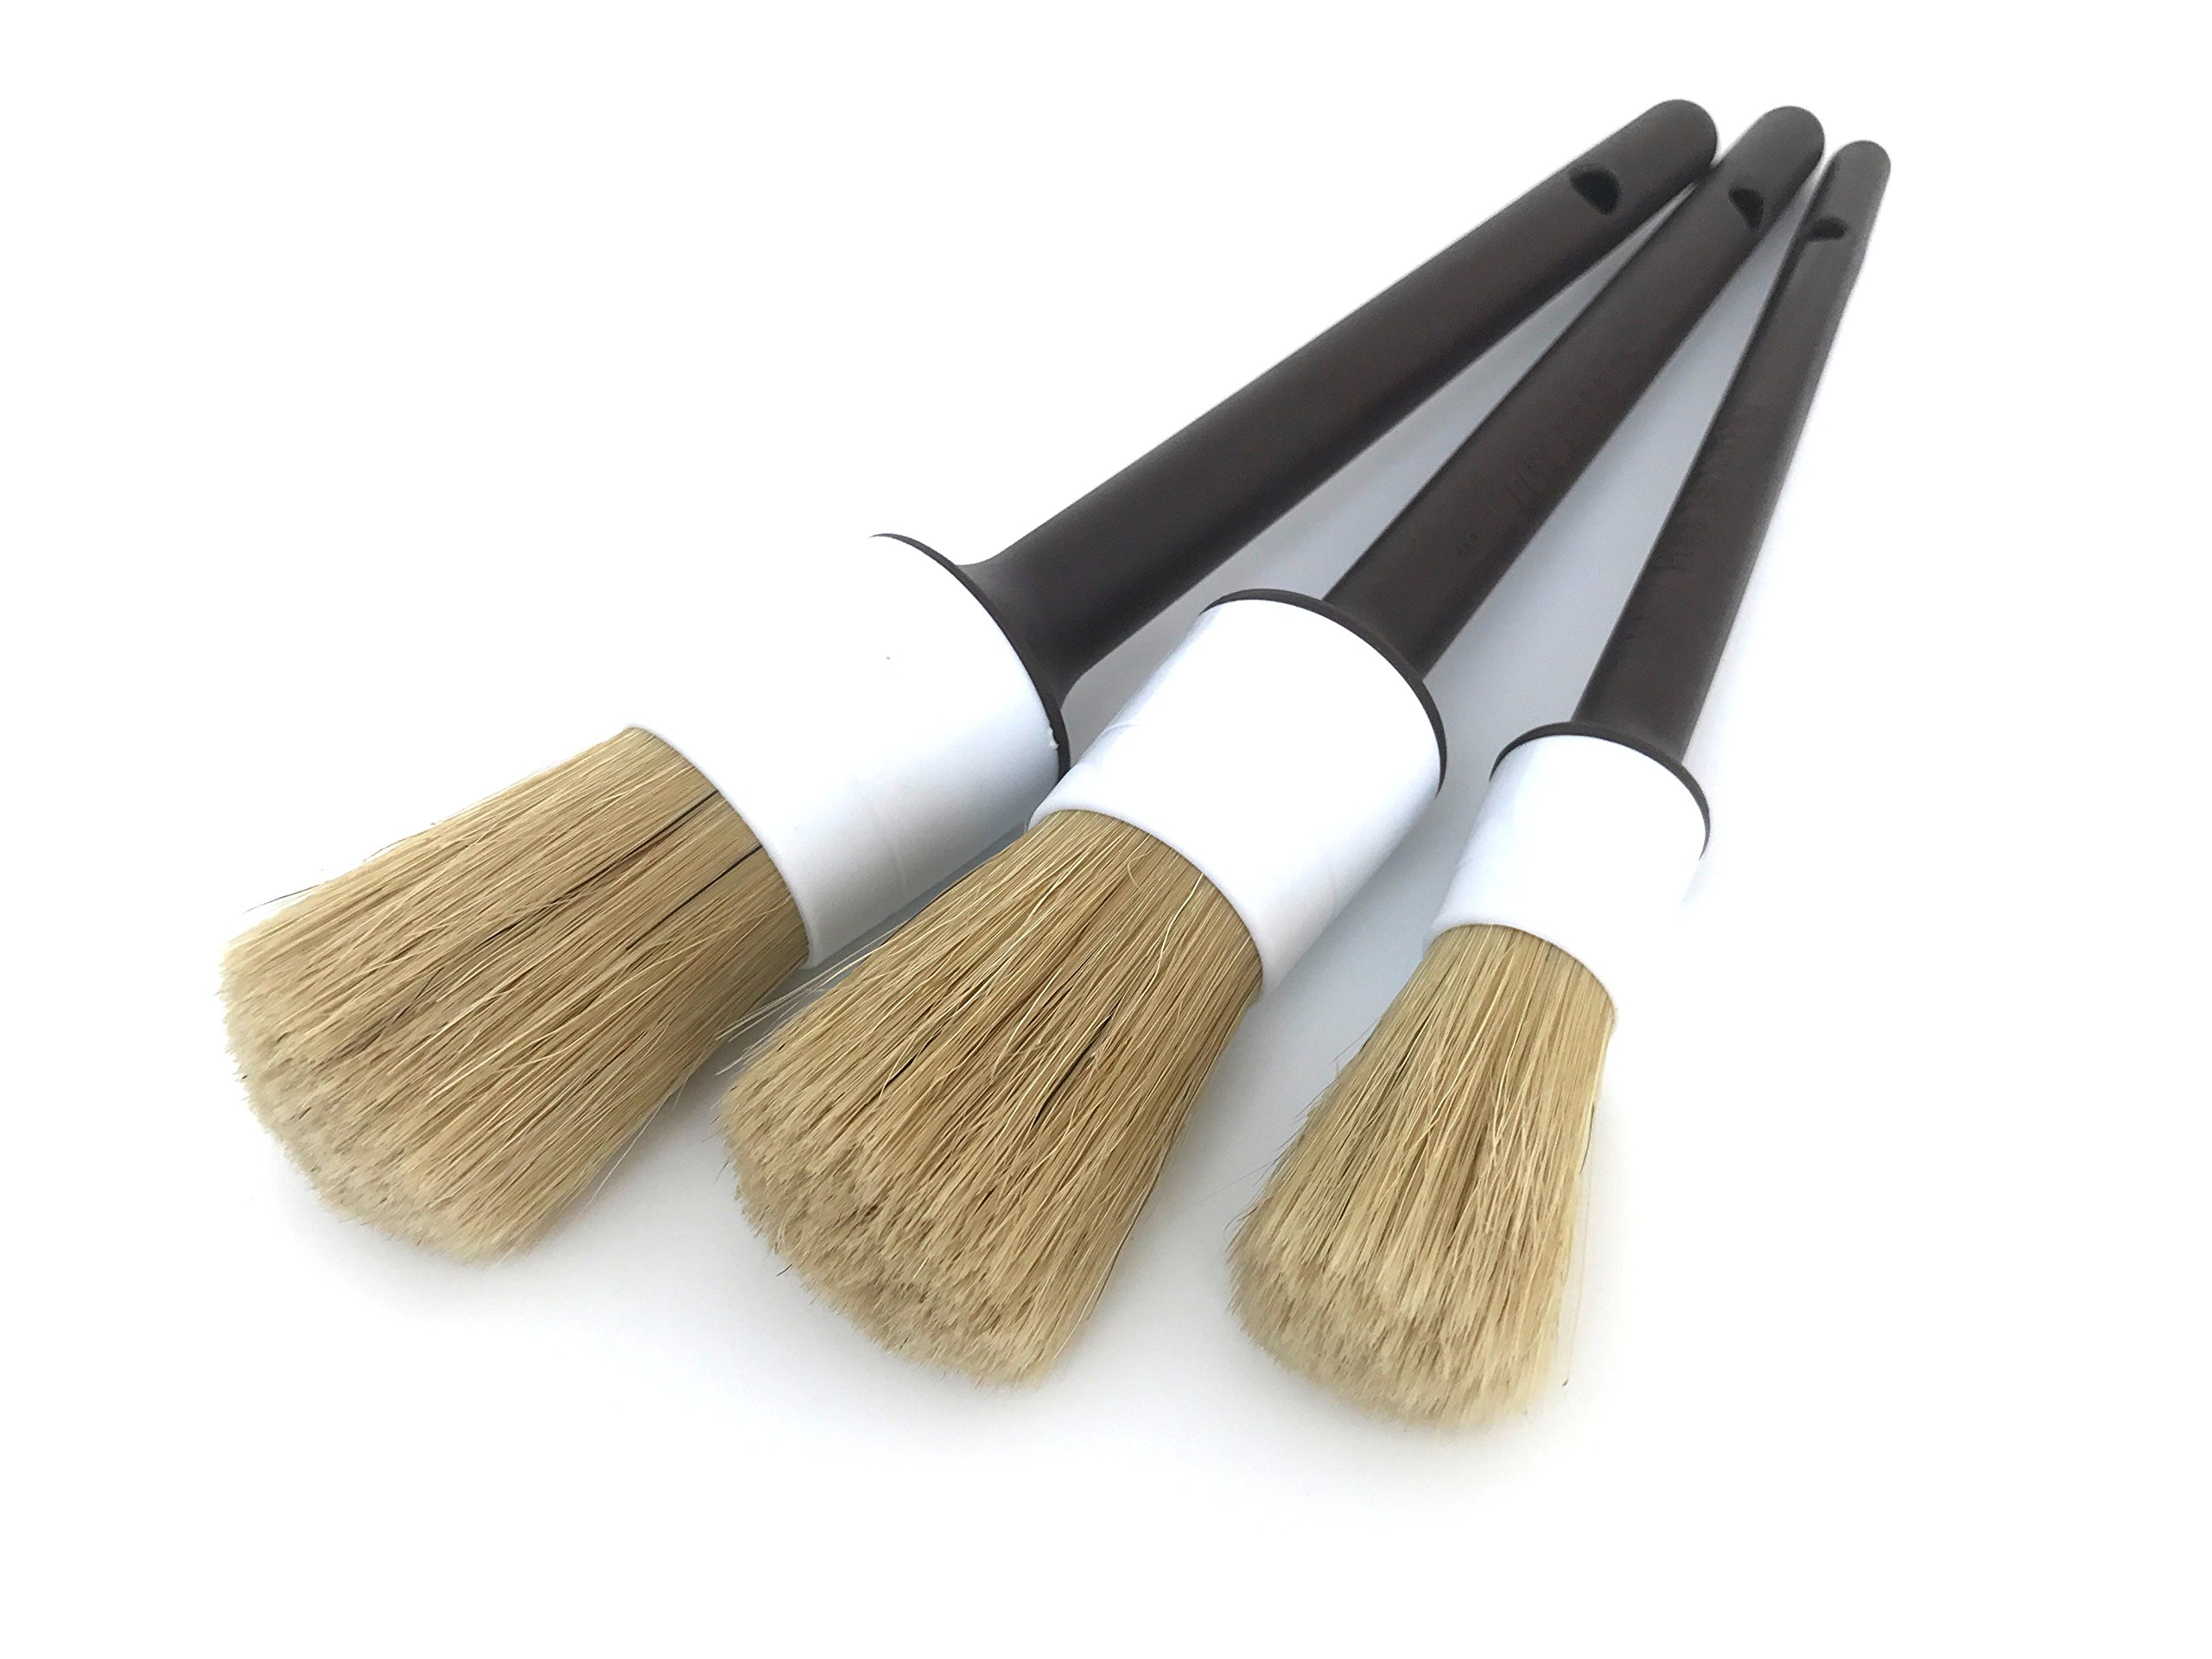 Boars Hair Ultra Soft Car Detail Brushes - Set of 3 - Perfect for Washing Emblems Wheels Interior Upholstery Air Vents, NO Metal Brush Parts